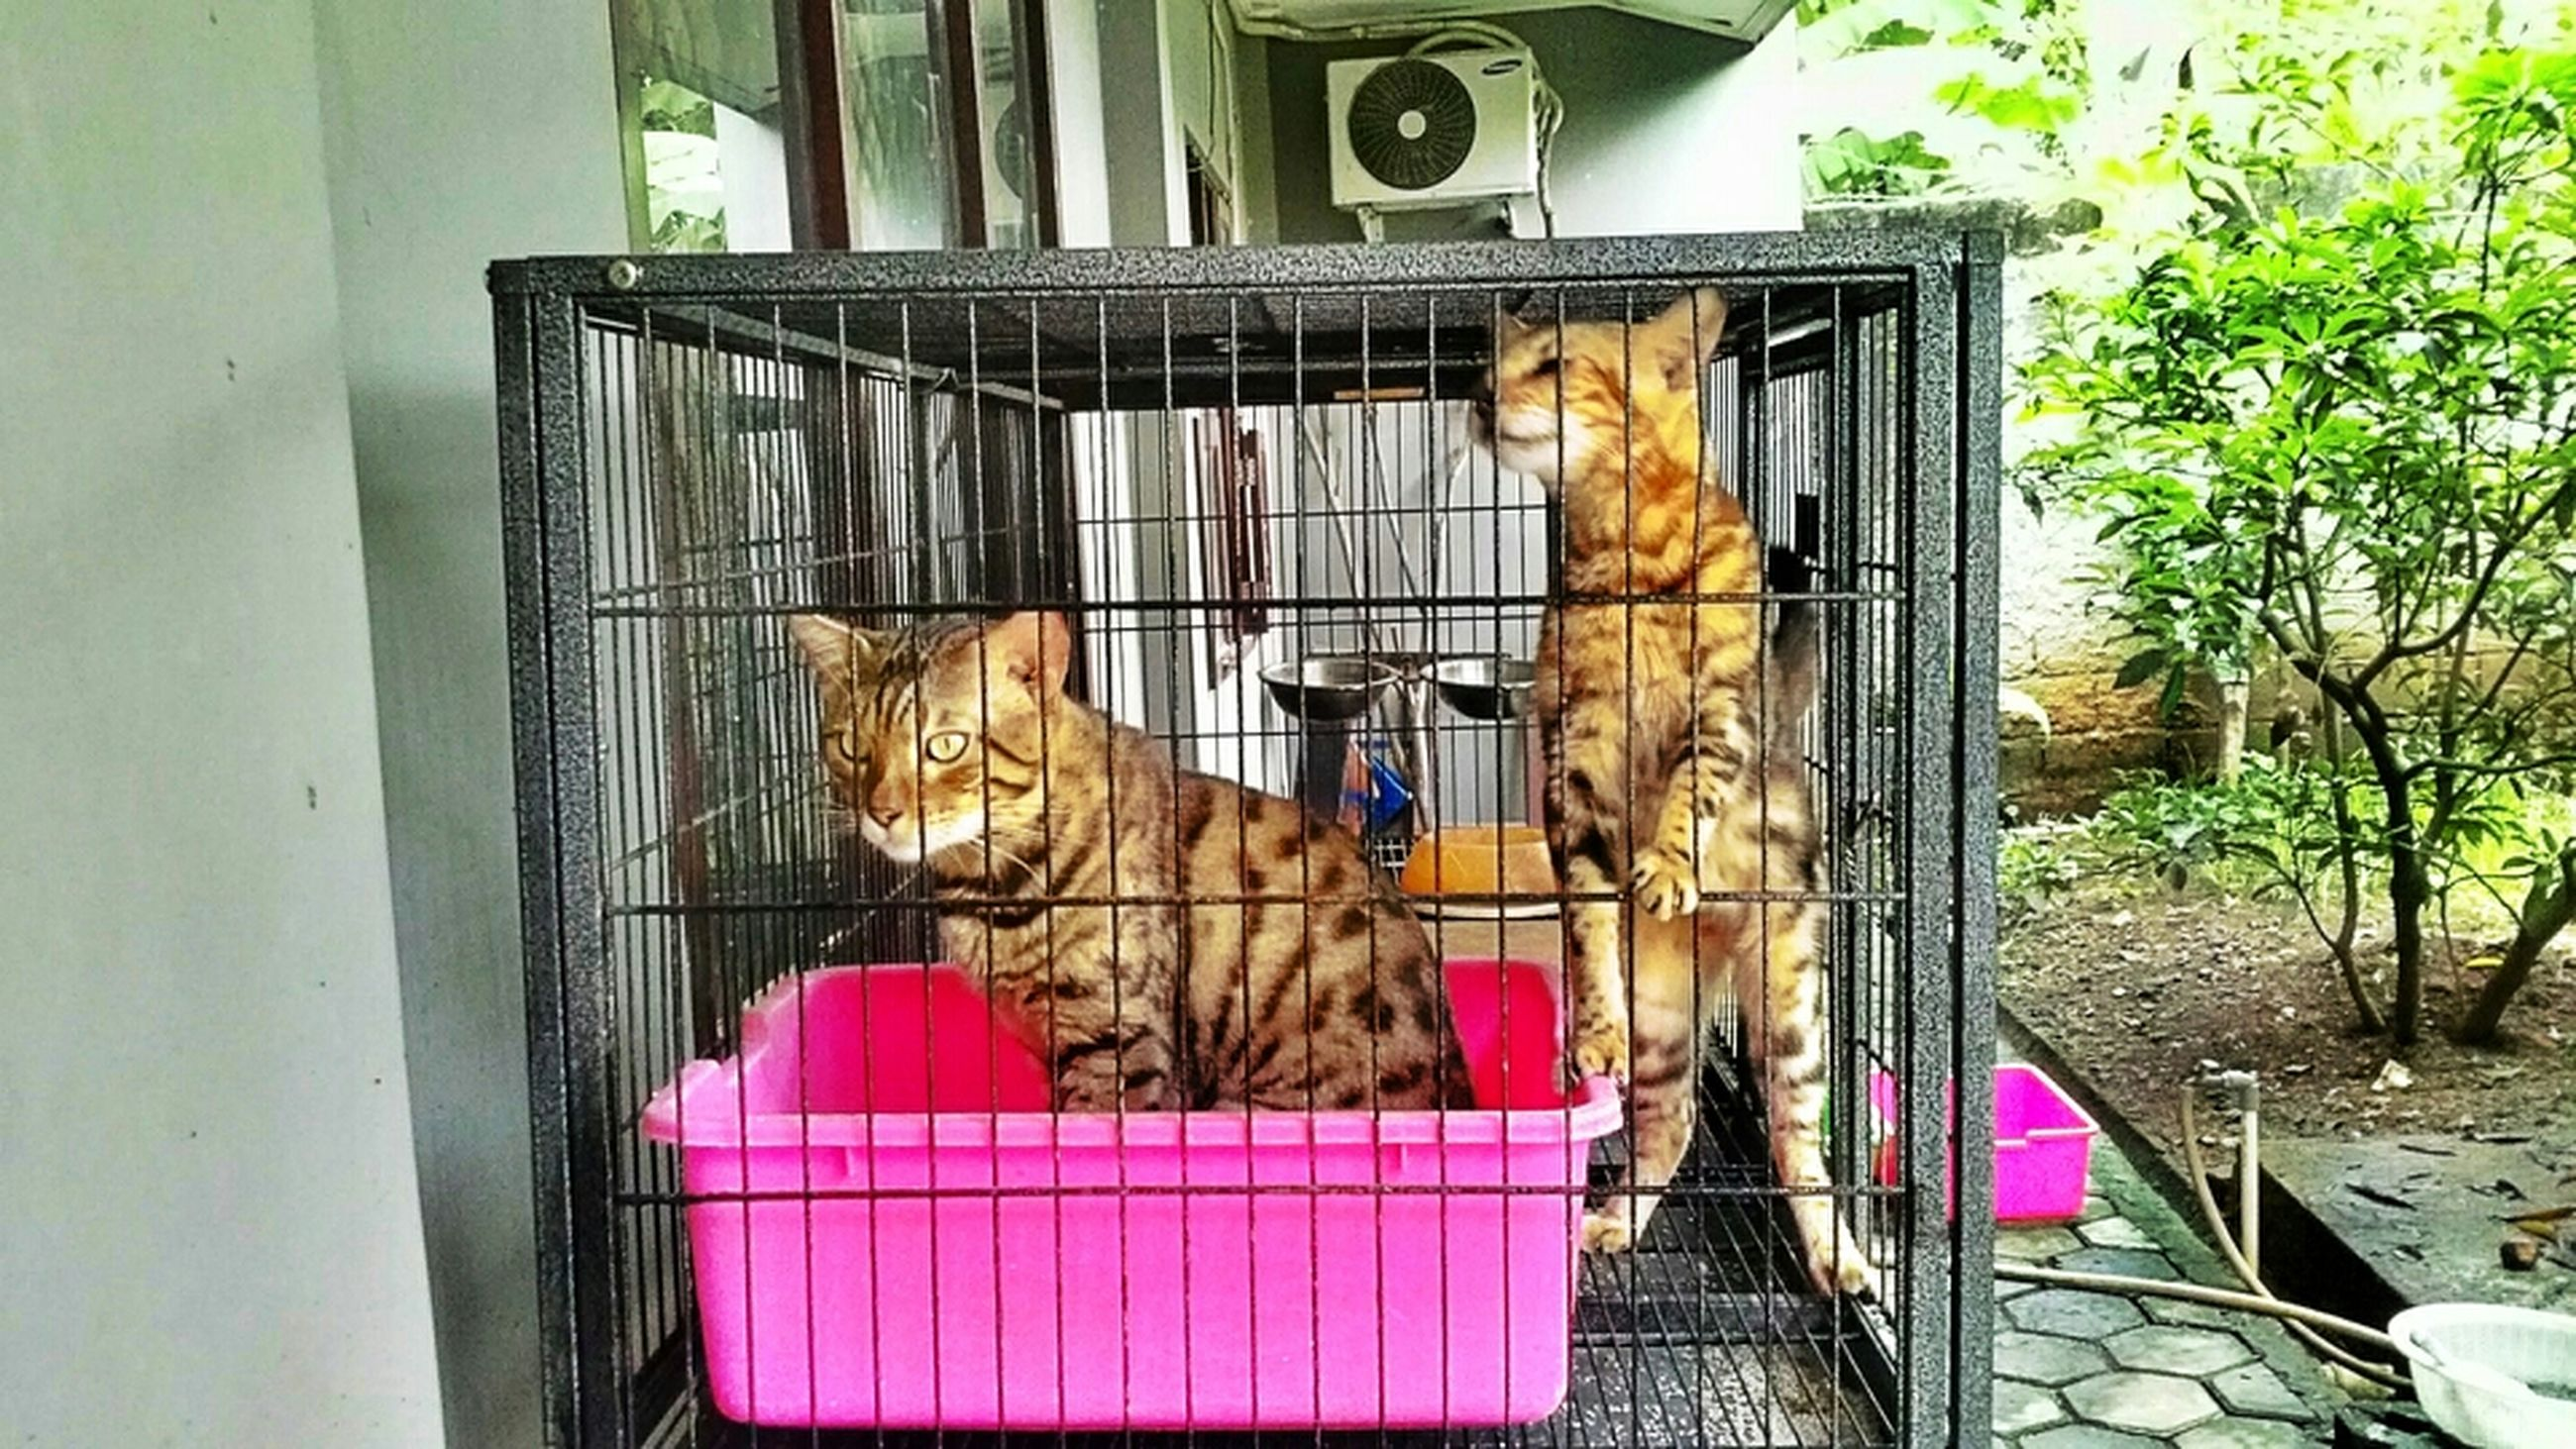 animal themes, domestic animals, mammal, pets, one animal, cage, built structure, architecture, building exterior, dog, window, house, relaxation, day, domestic cat, animals in captivity, livestock, resting, two animals, birdcage